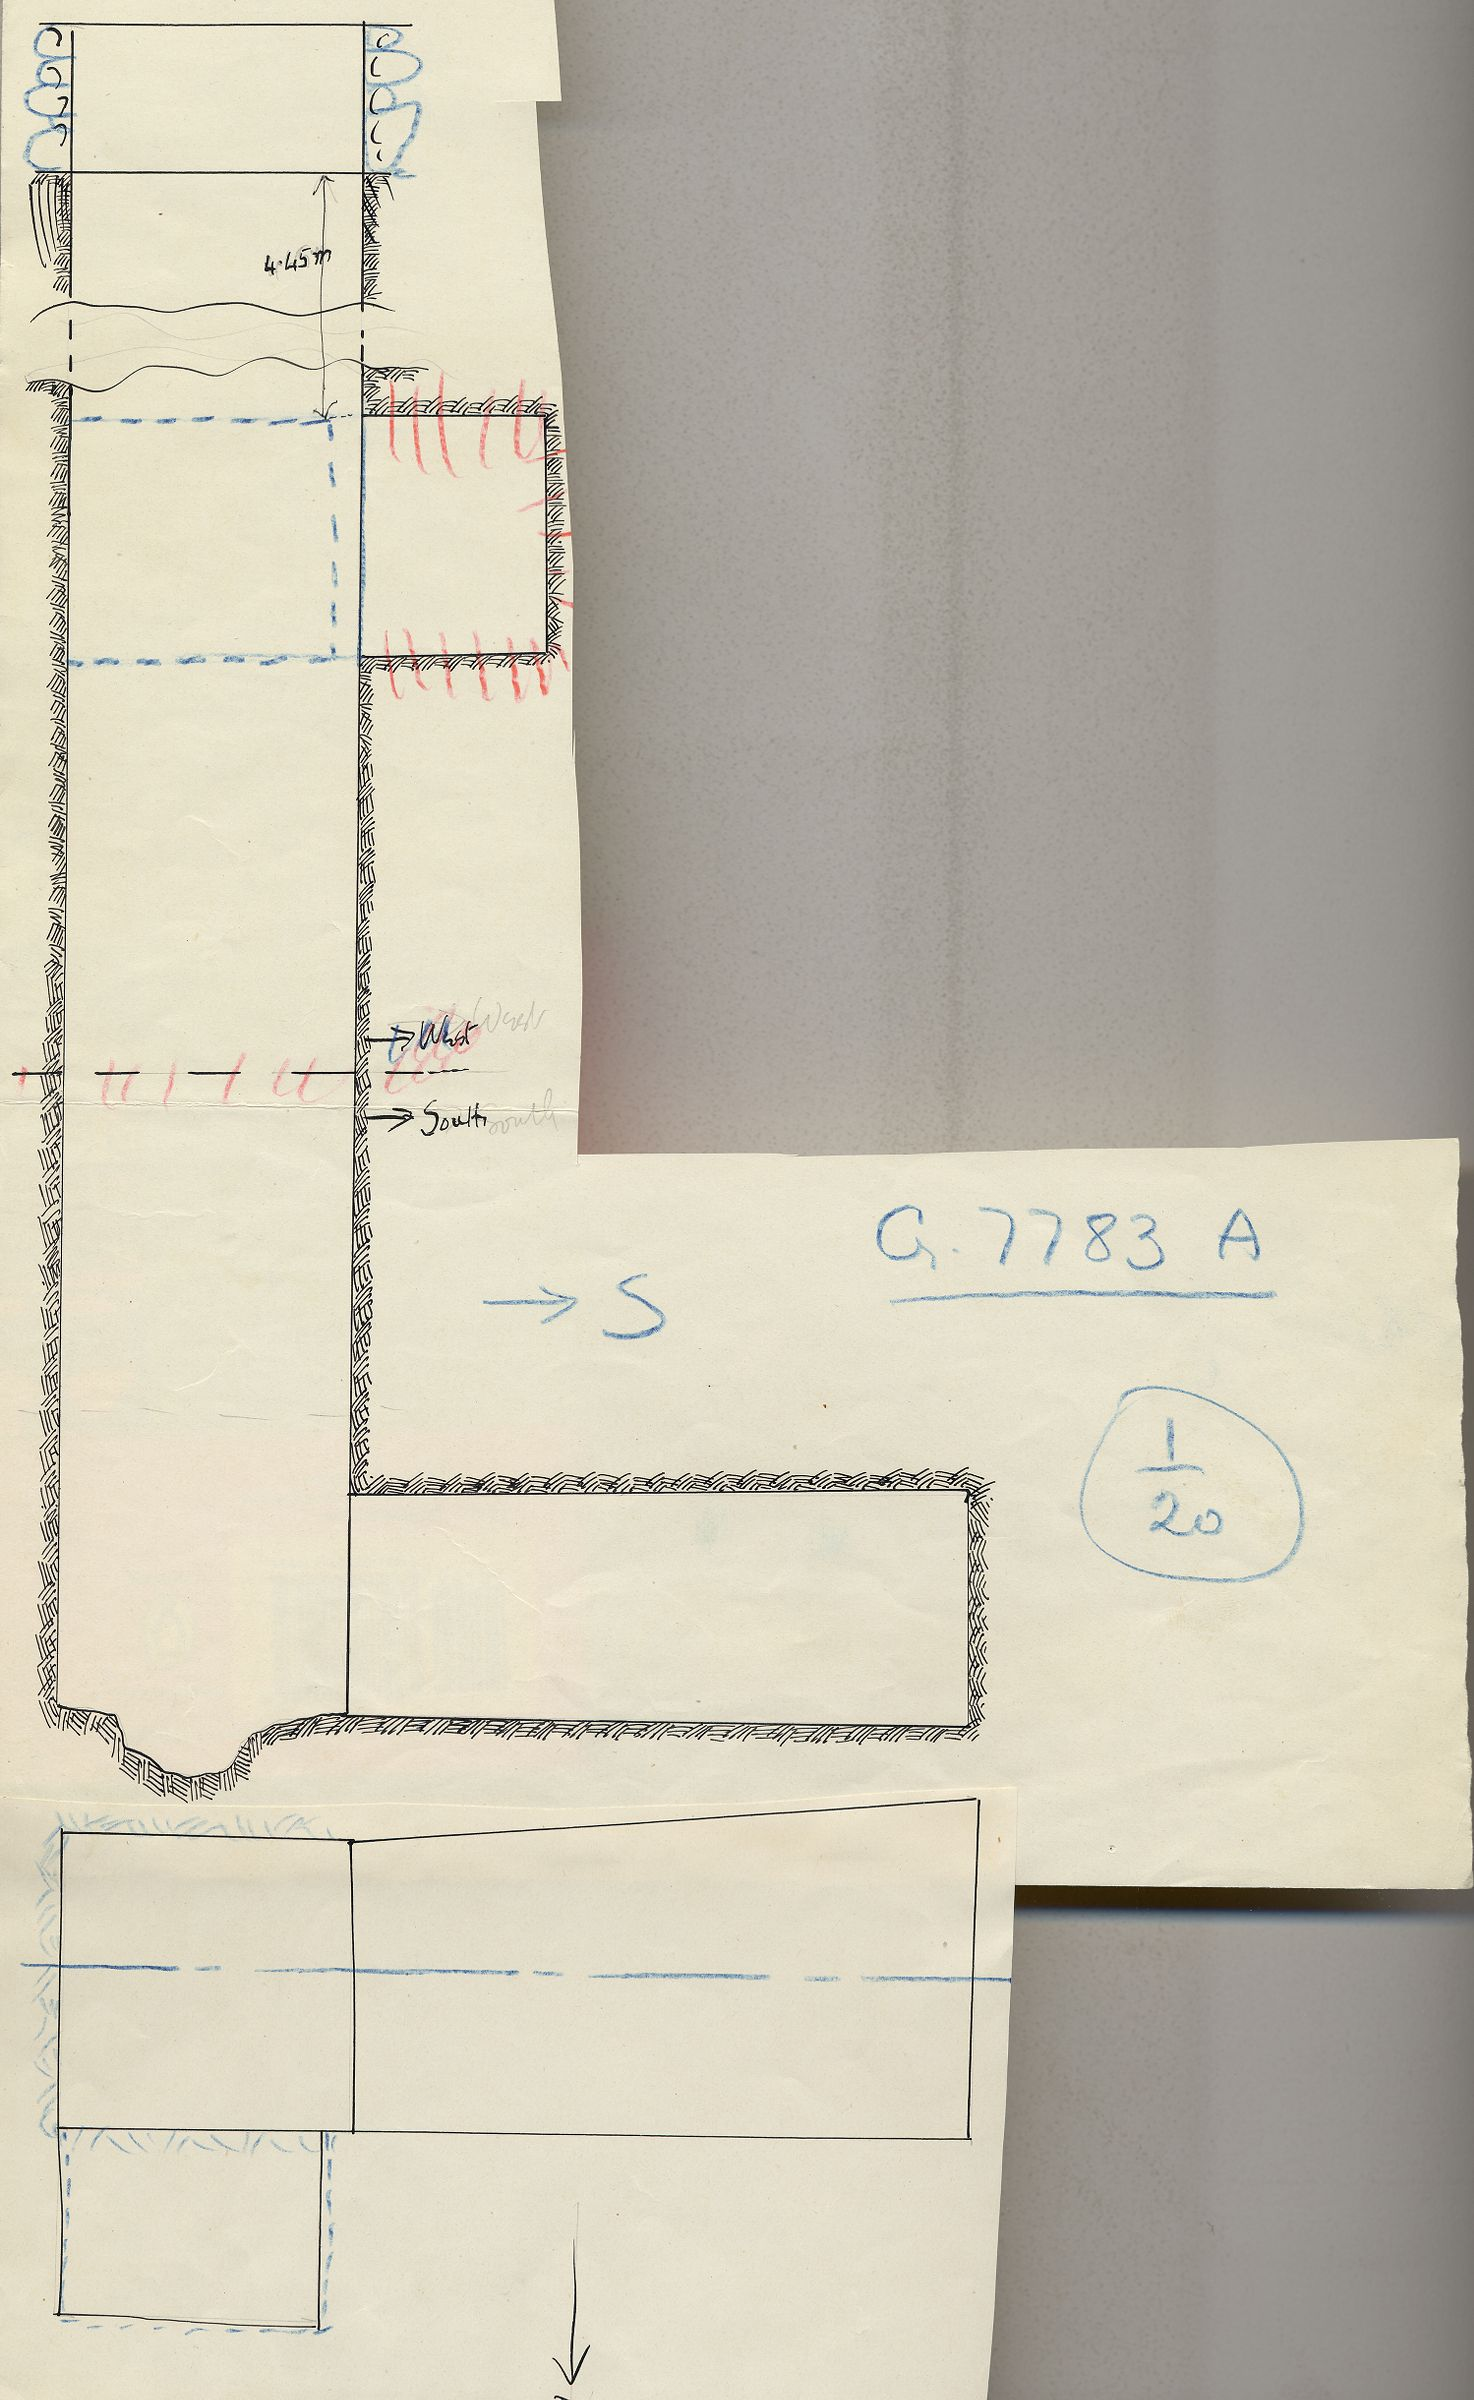 Maps and plans: G 7783, Shaft A